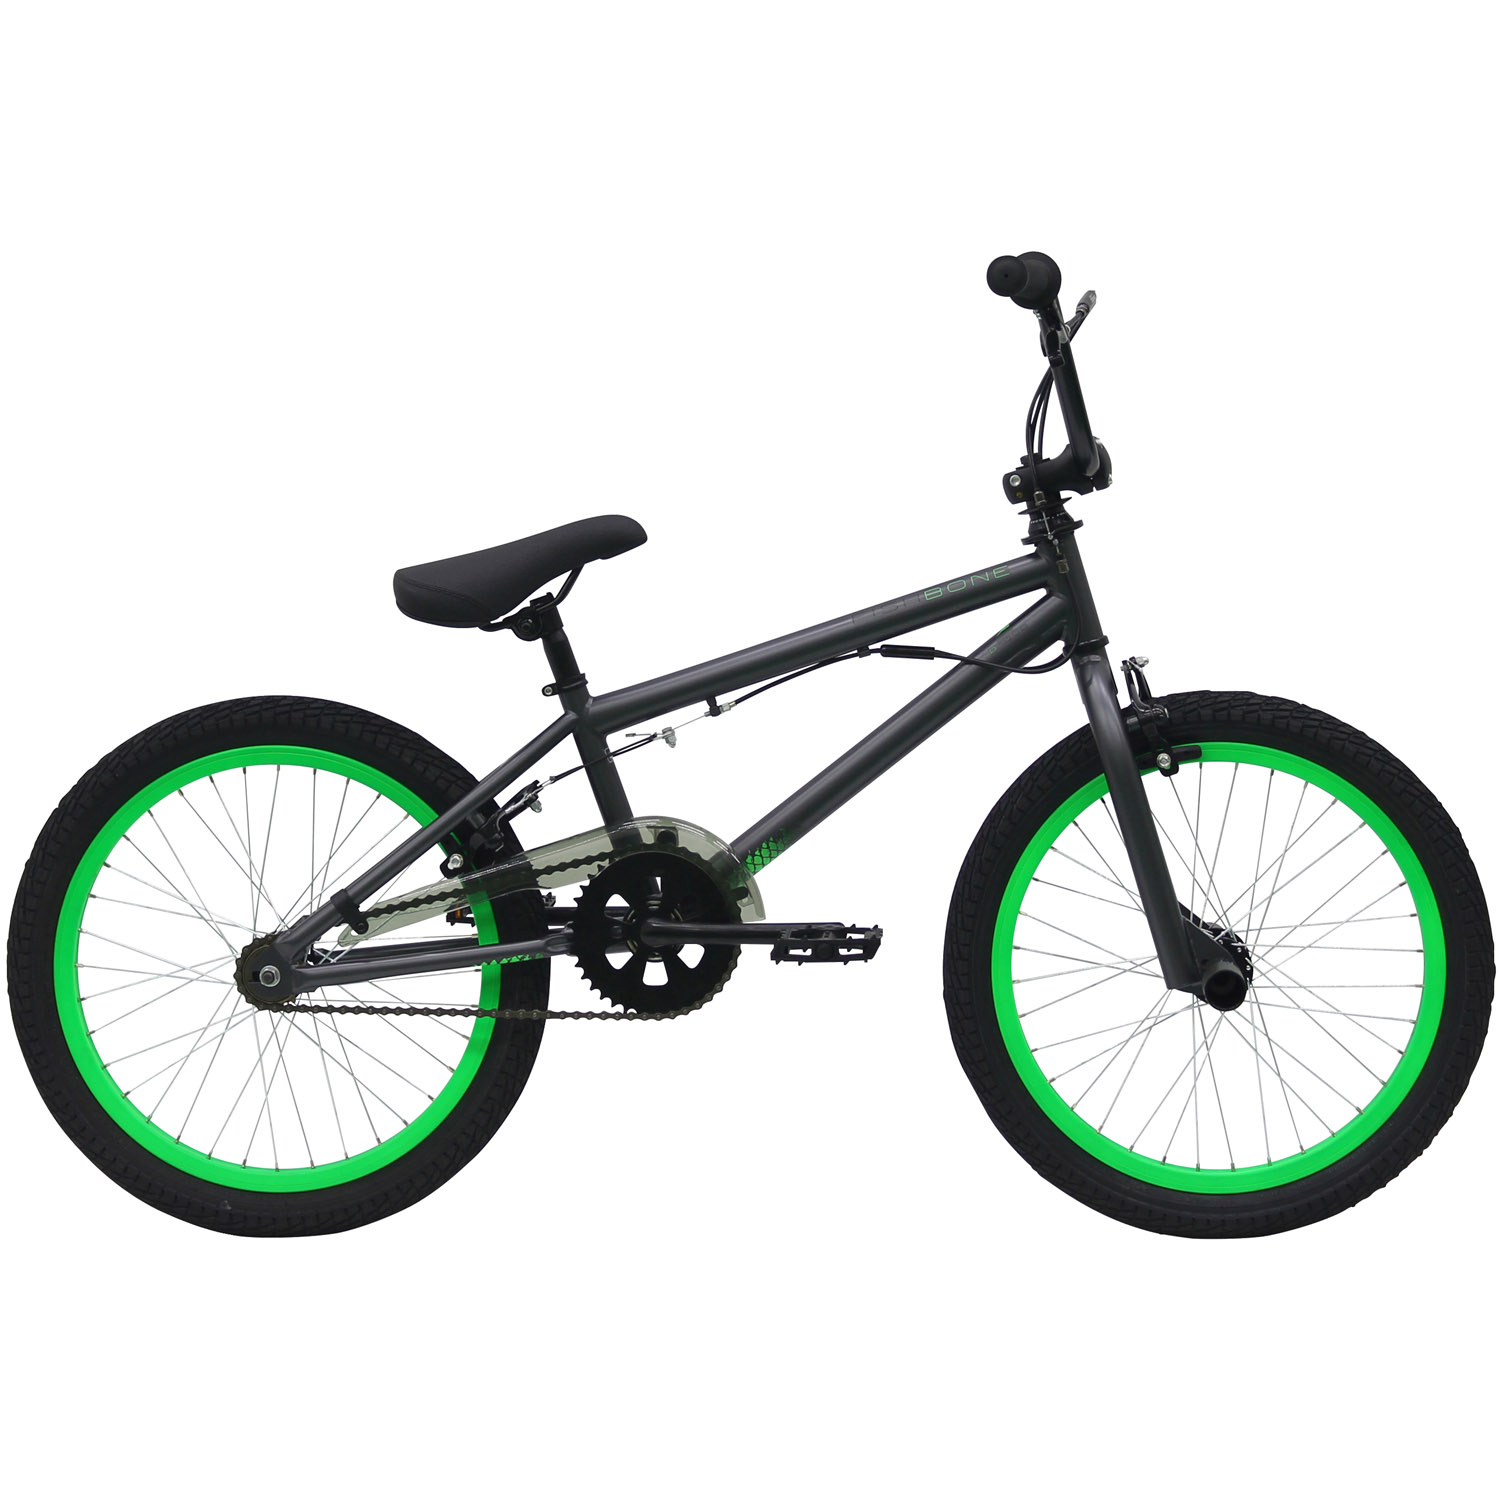 fishbone p1000 bmx bike 20 zoll online shop zweirad. Black Bedroom Furniture Sets. Home Design Ideas